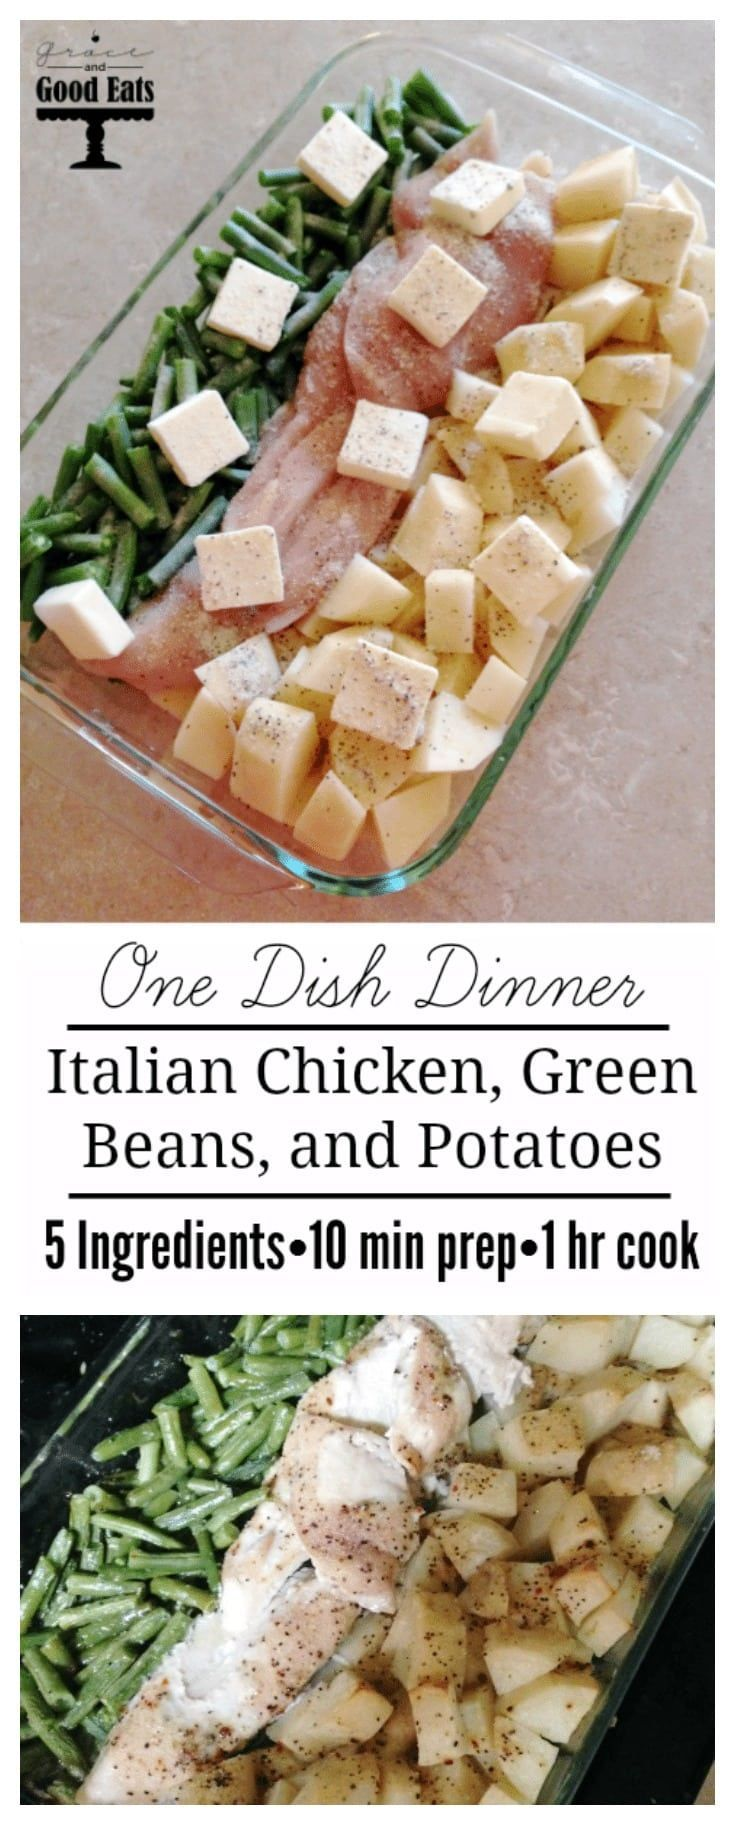 Italian Chicken, Green Beans, and Potatoes images